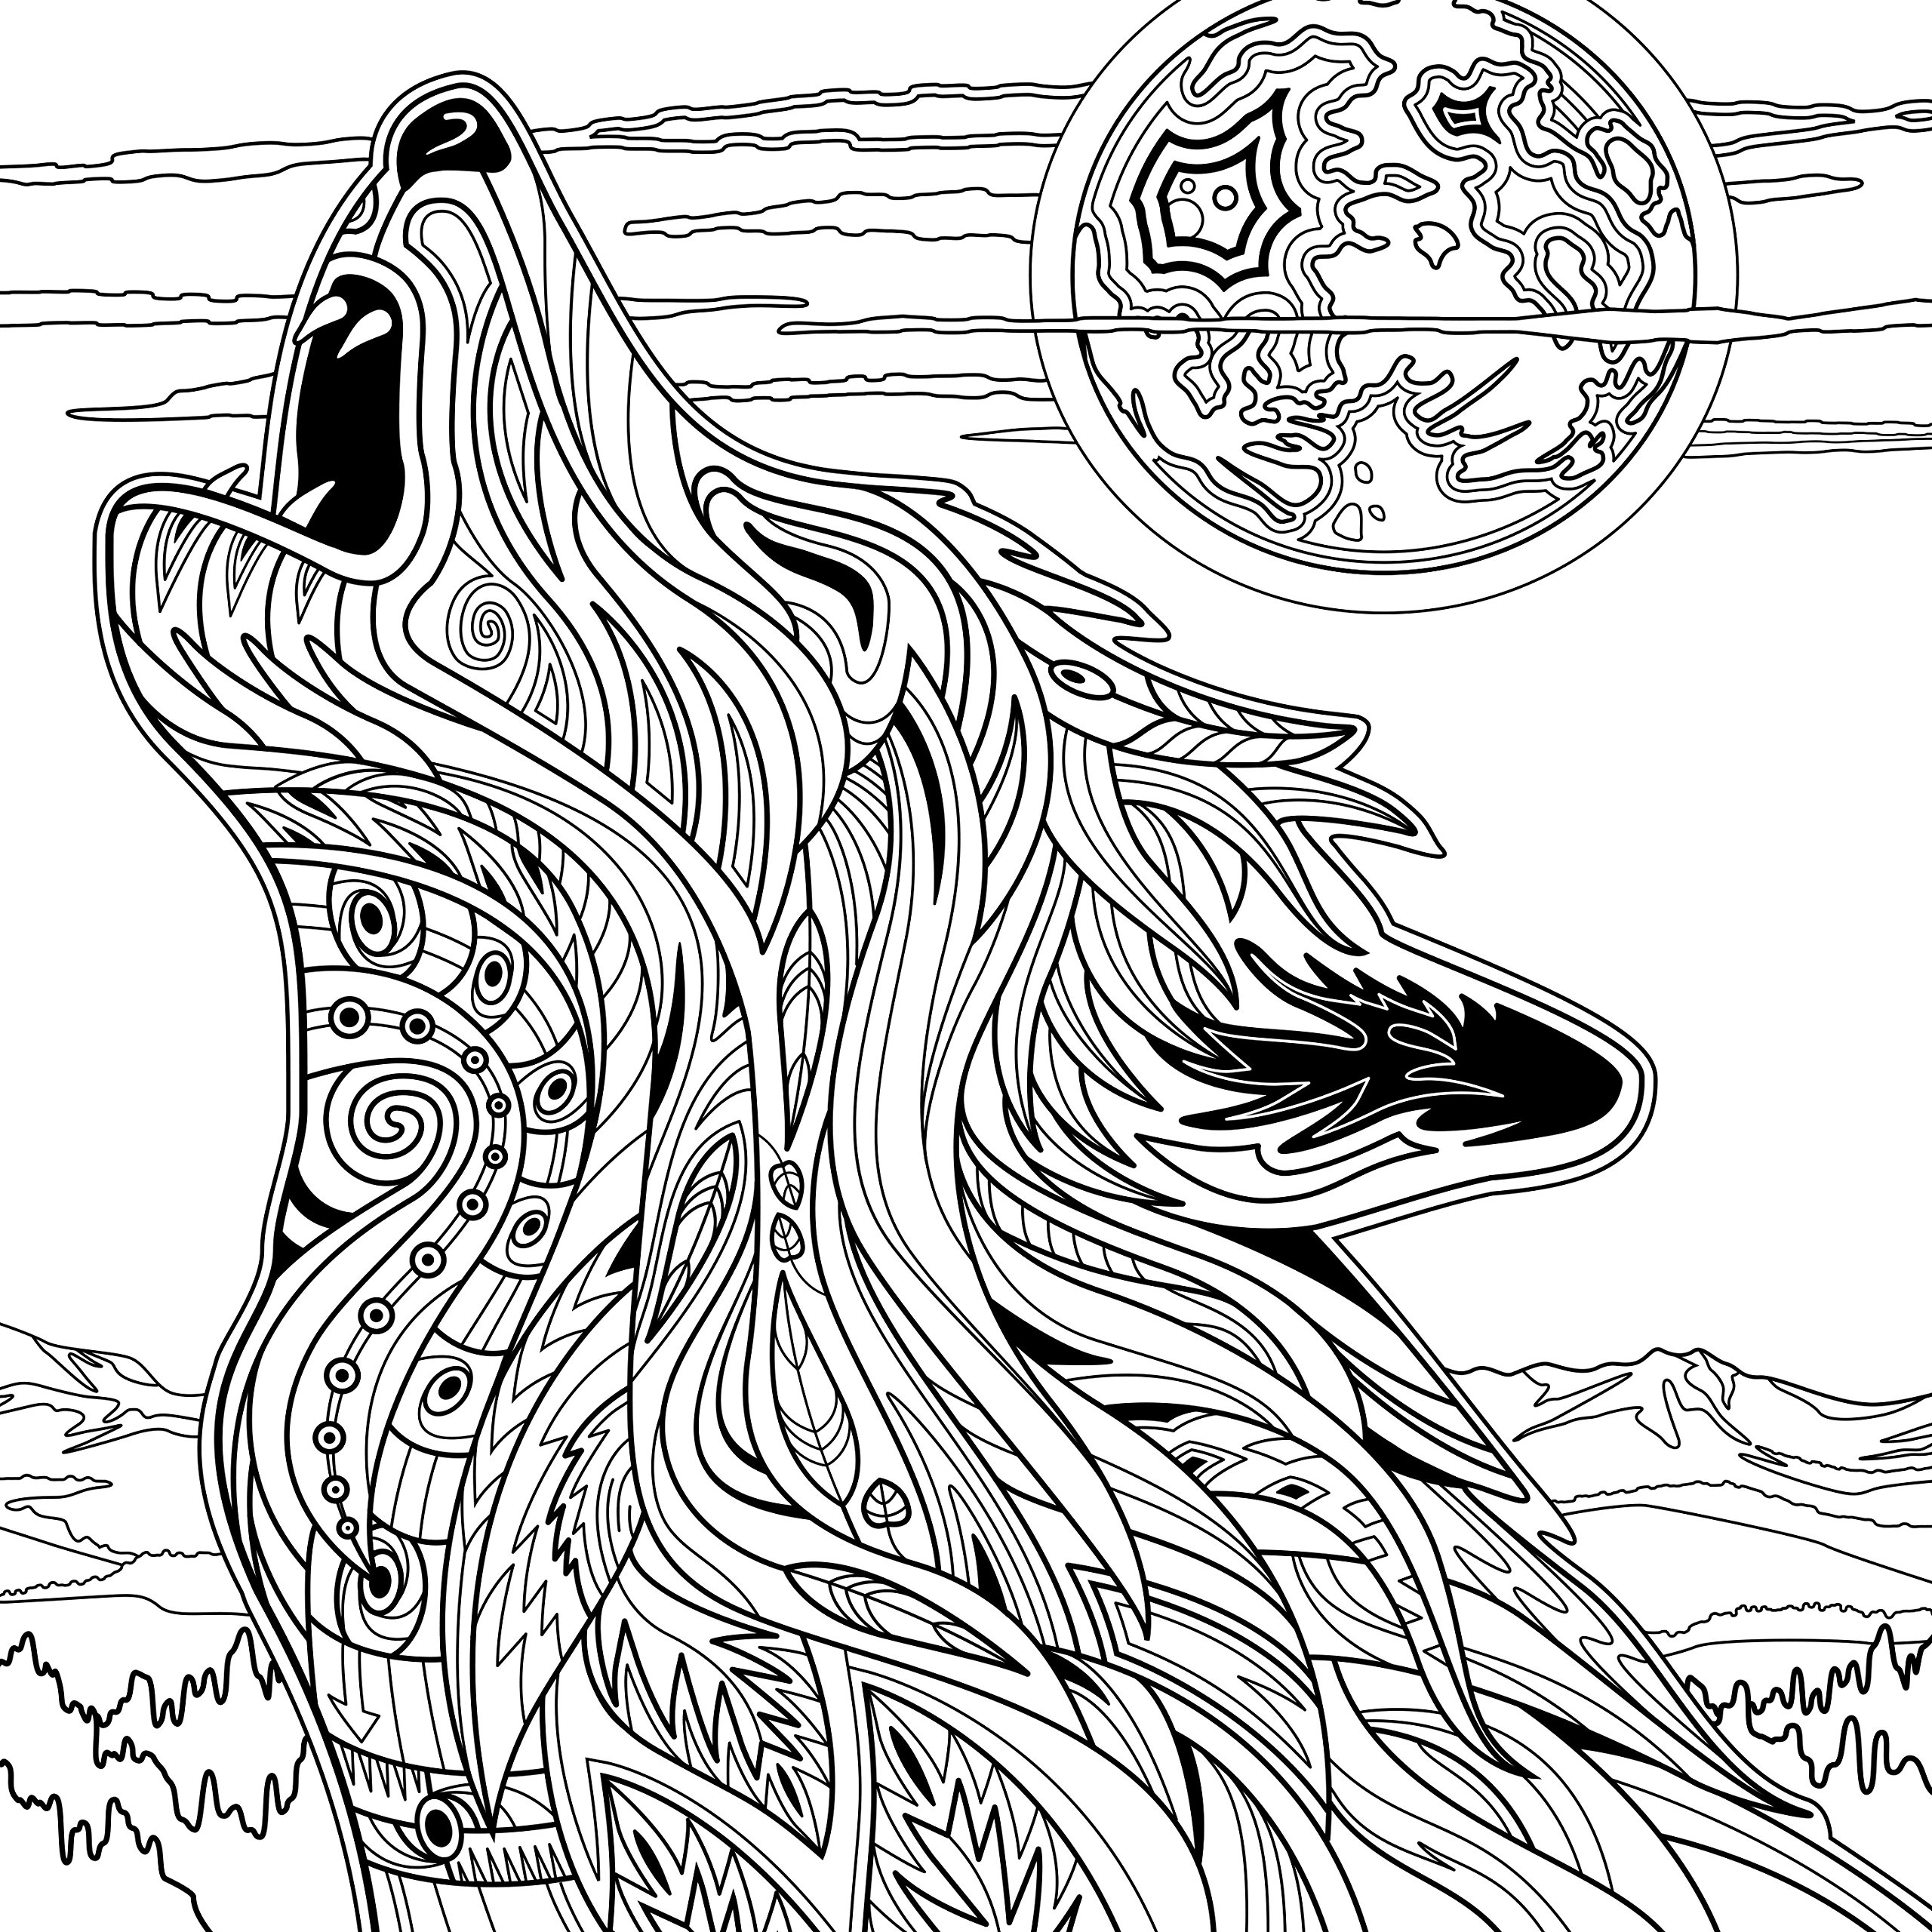 2560x2560 Yellowstone National Park Coloring Pages Free Coloring For Kids